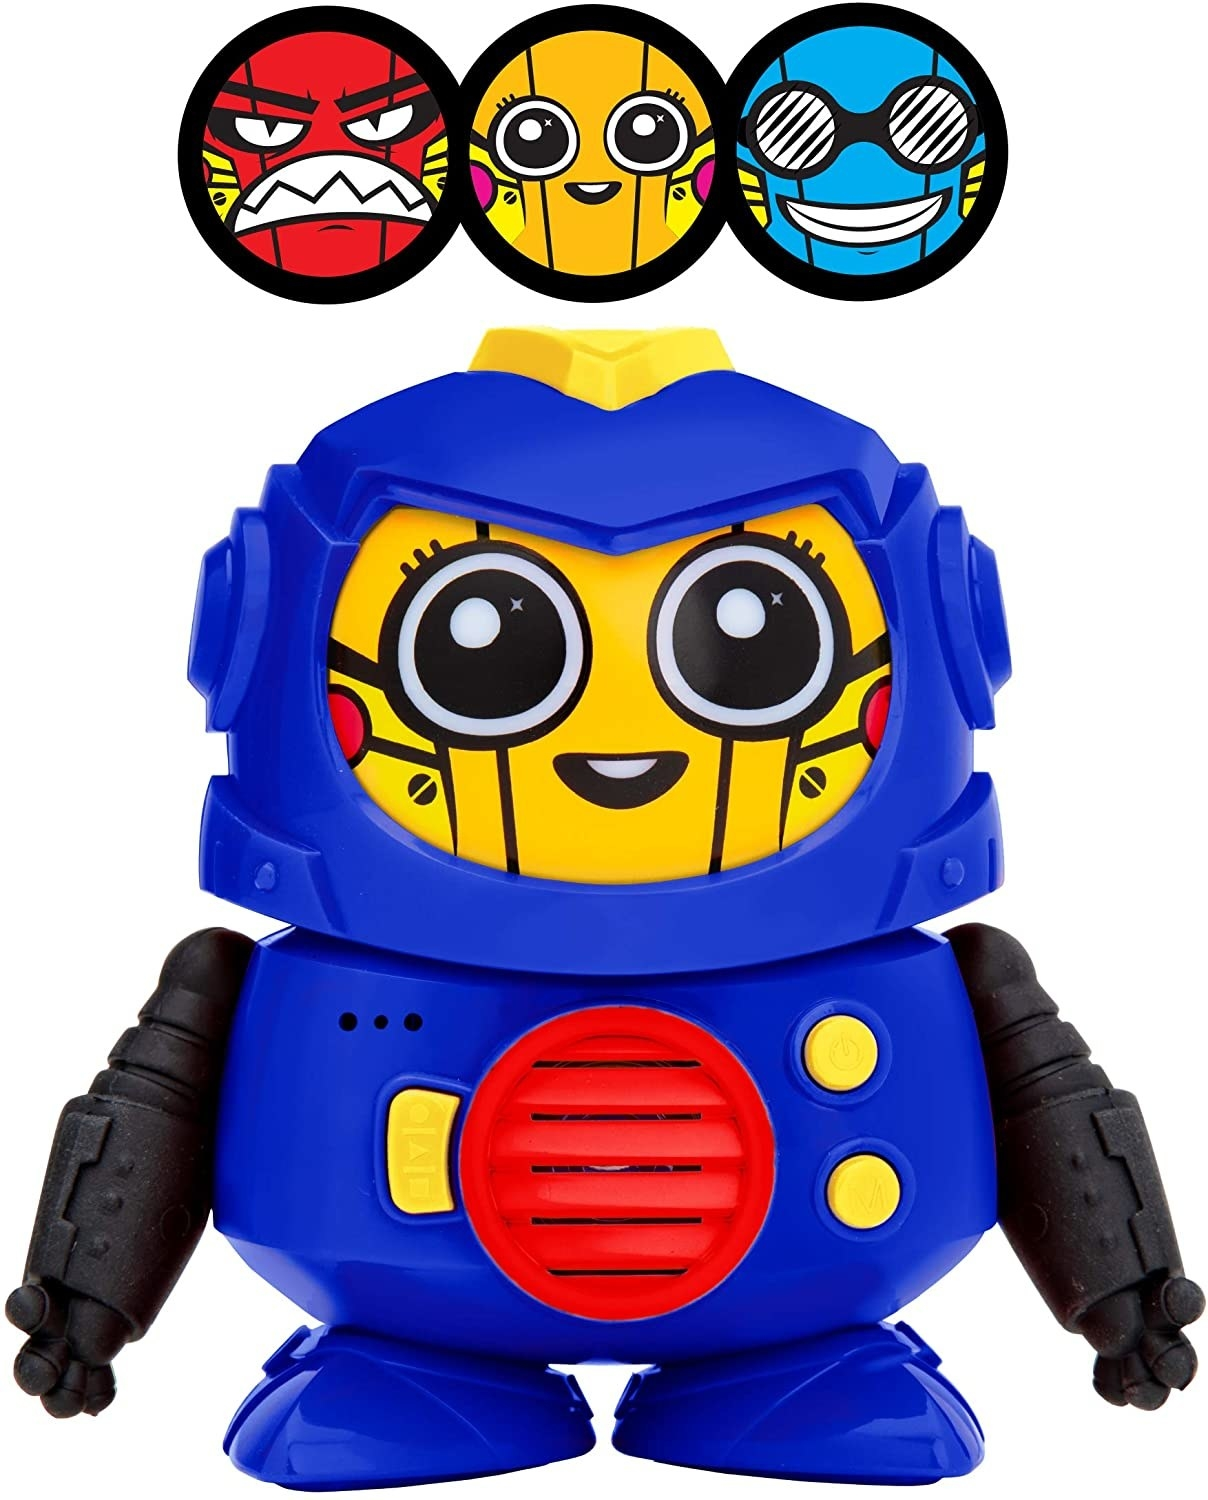 A blue plastic robot with three different face options